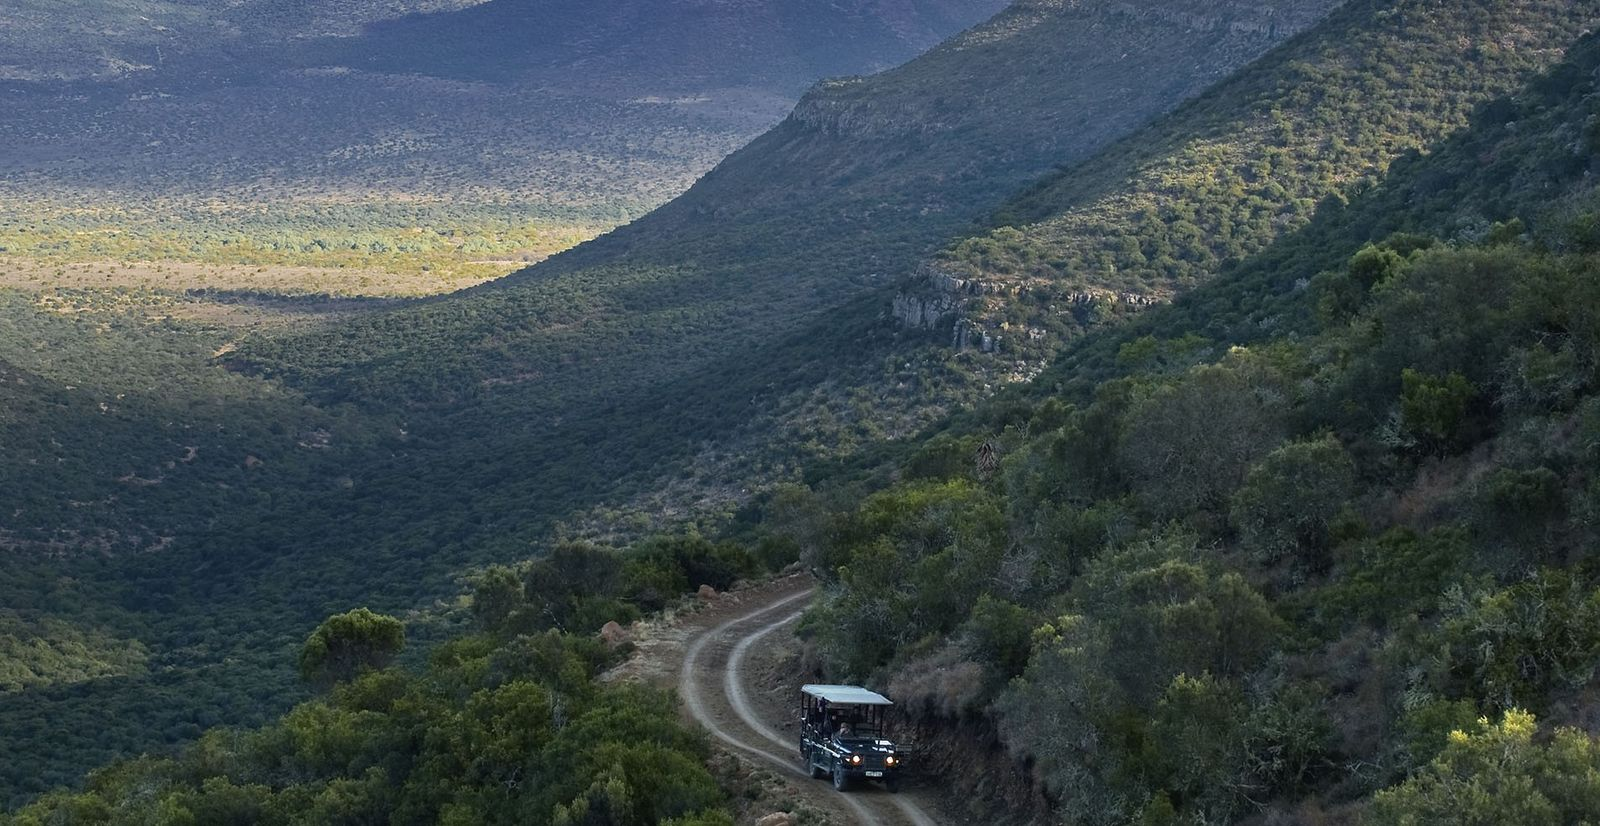 The outback experience in Karoo, South Africa